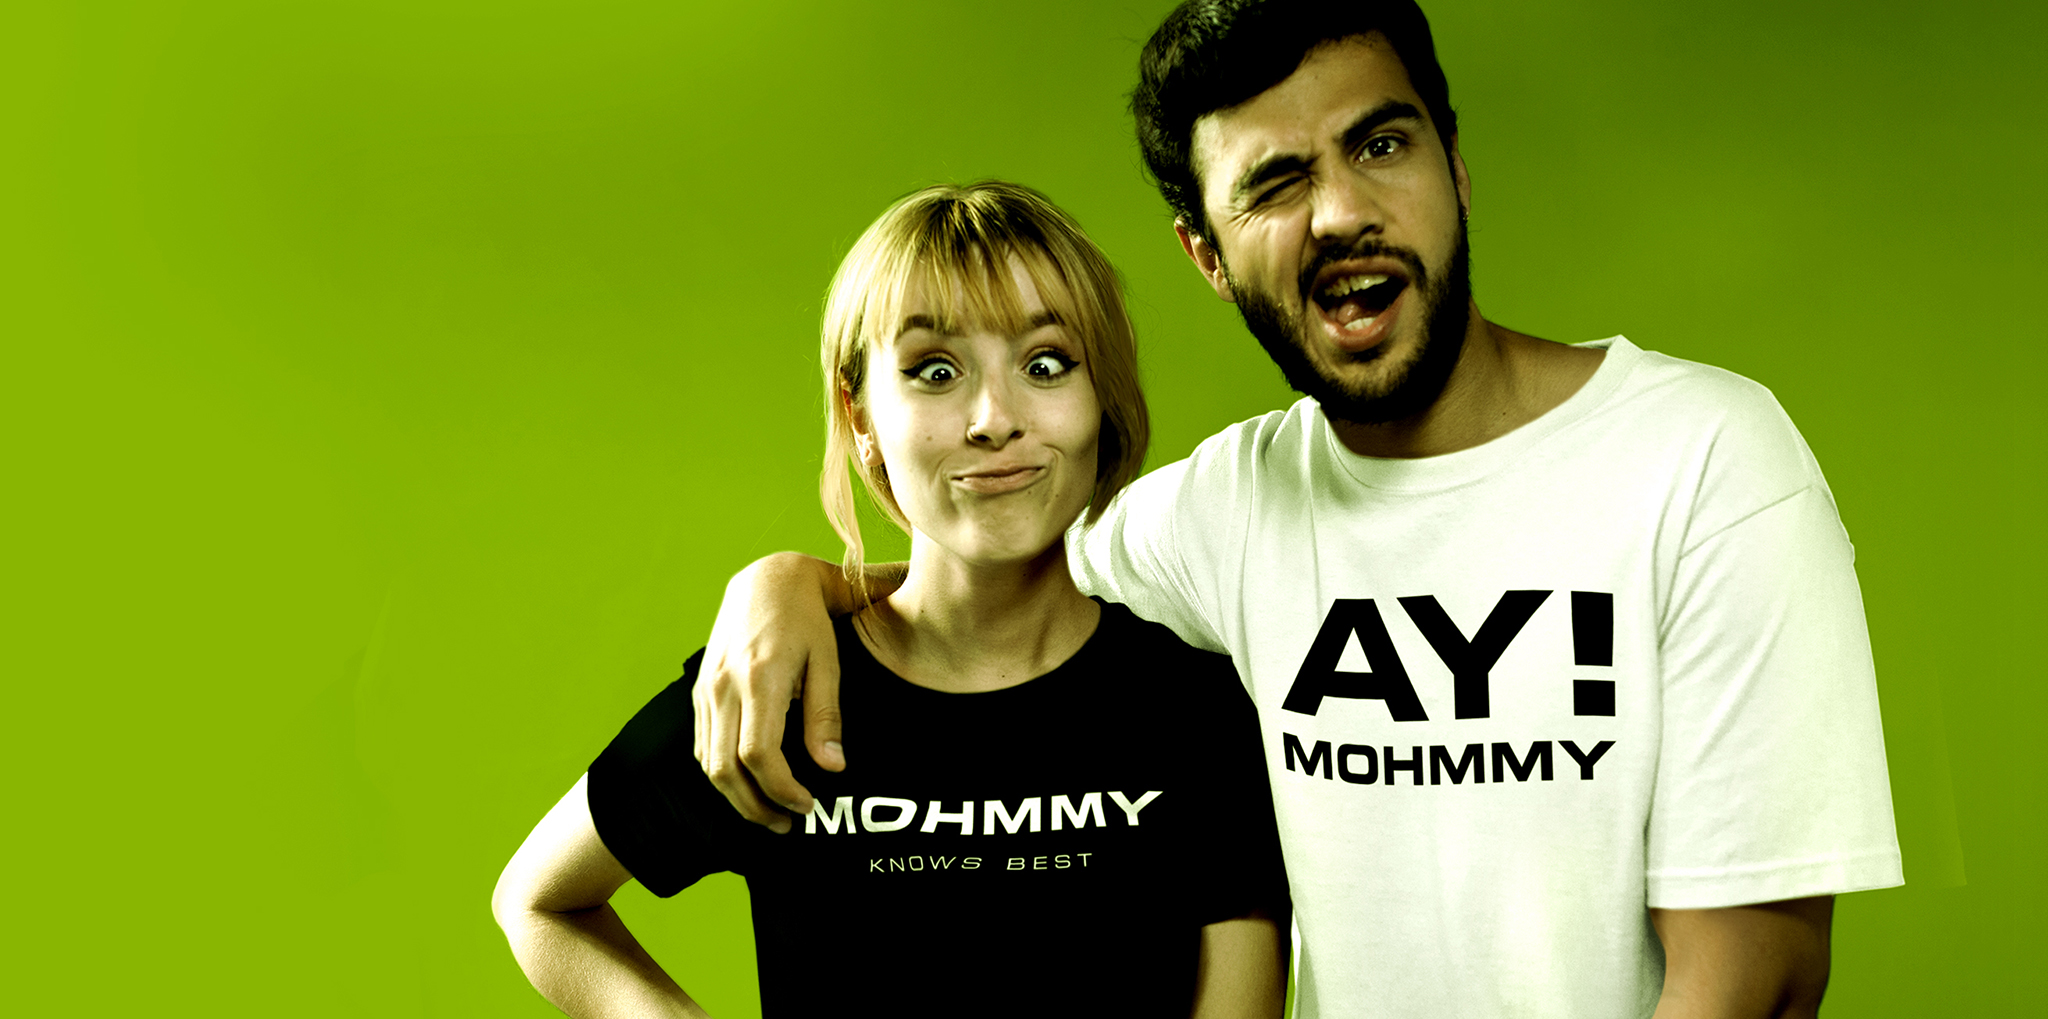 Mommy_Whimsical-Tees_For_All_Ages-MOHMMY-S.jpg